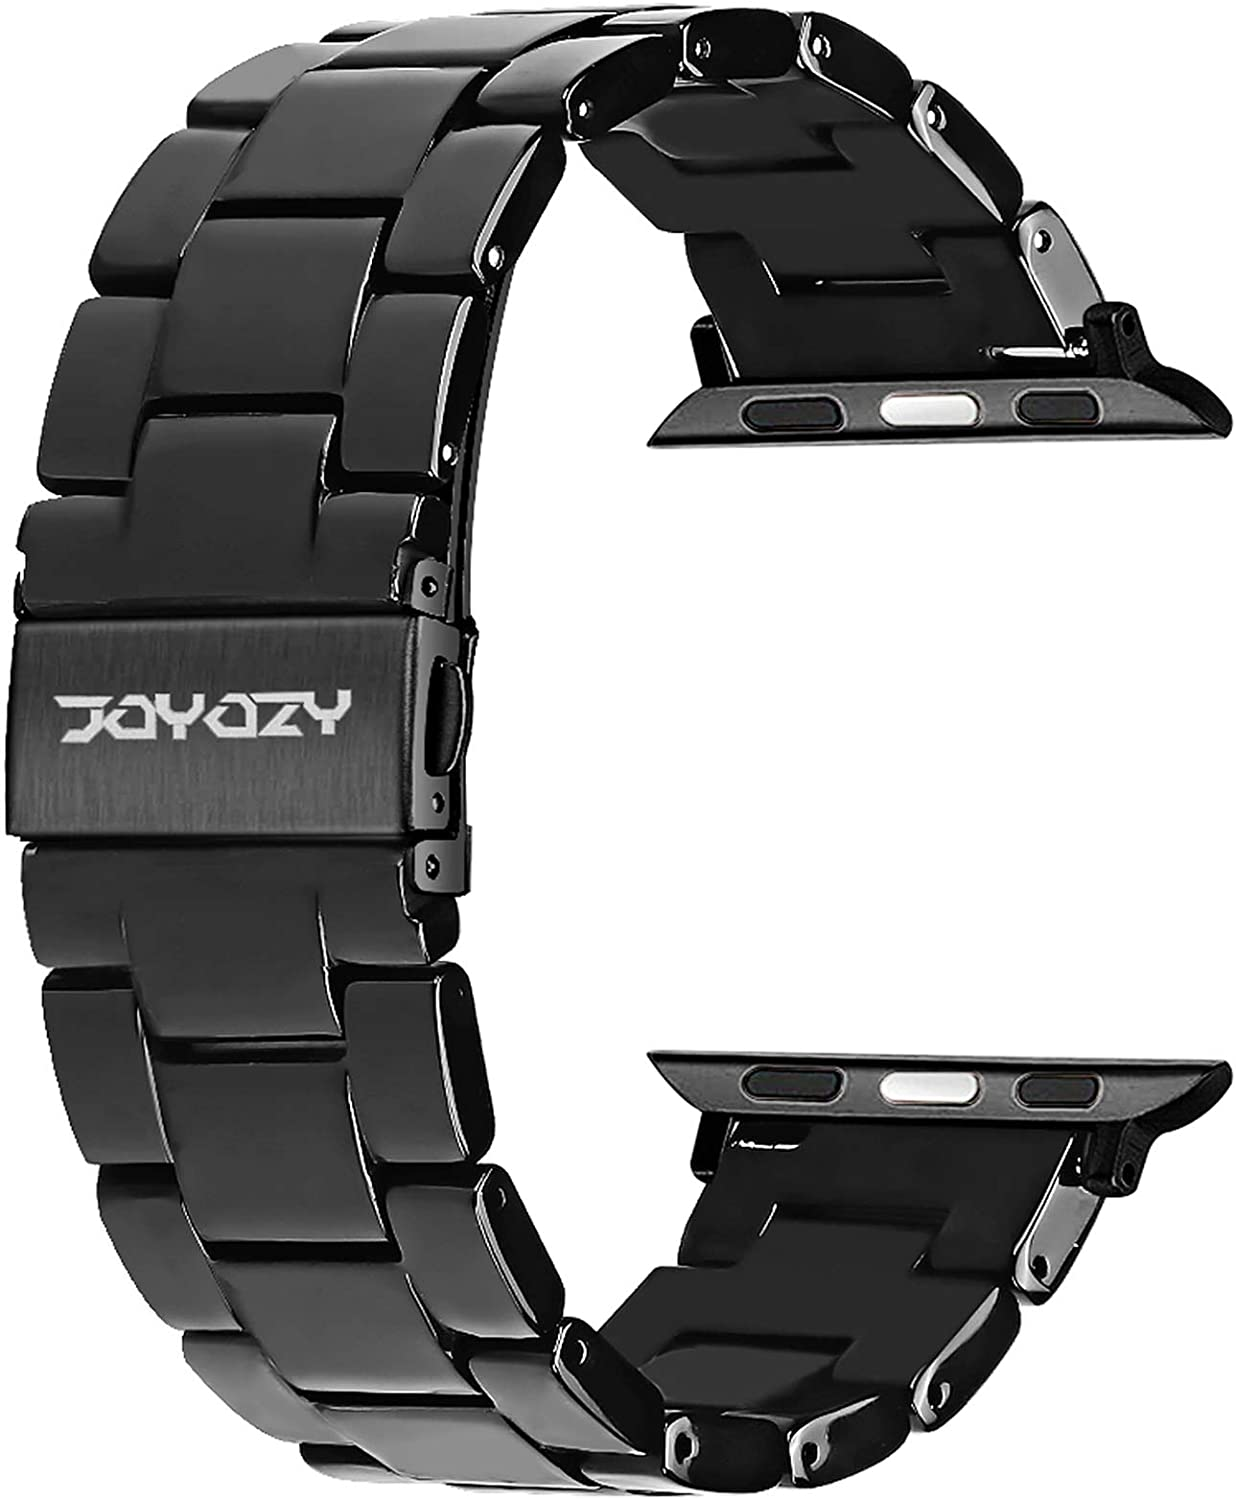 Joyozy Compatible with Apple Watch Bands 38mm 40mm, Resin Wristbands Replacement for iWatch SE& Series 6/5/4/3/2/1 for Women Men Gift Fashion Bracelet-(38mm/40mm, Perfect Black)